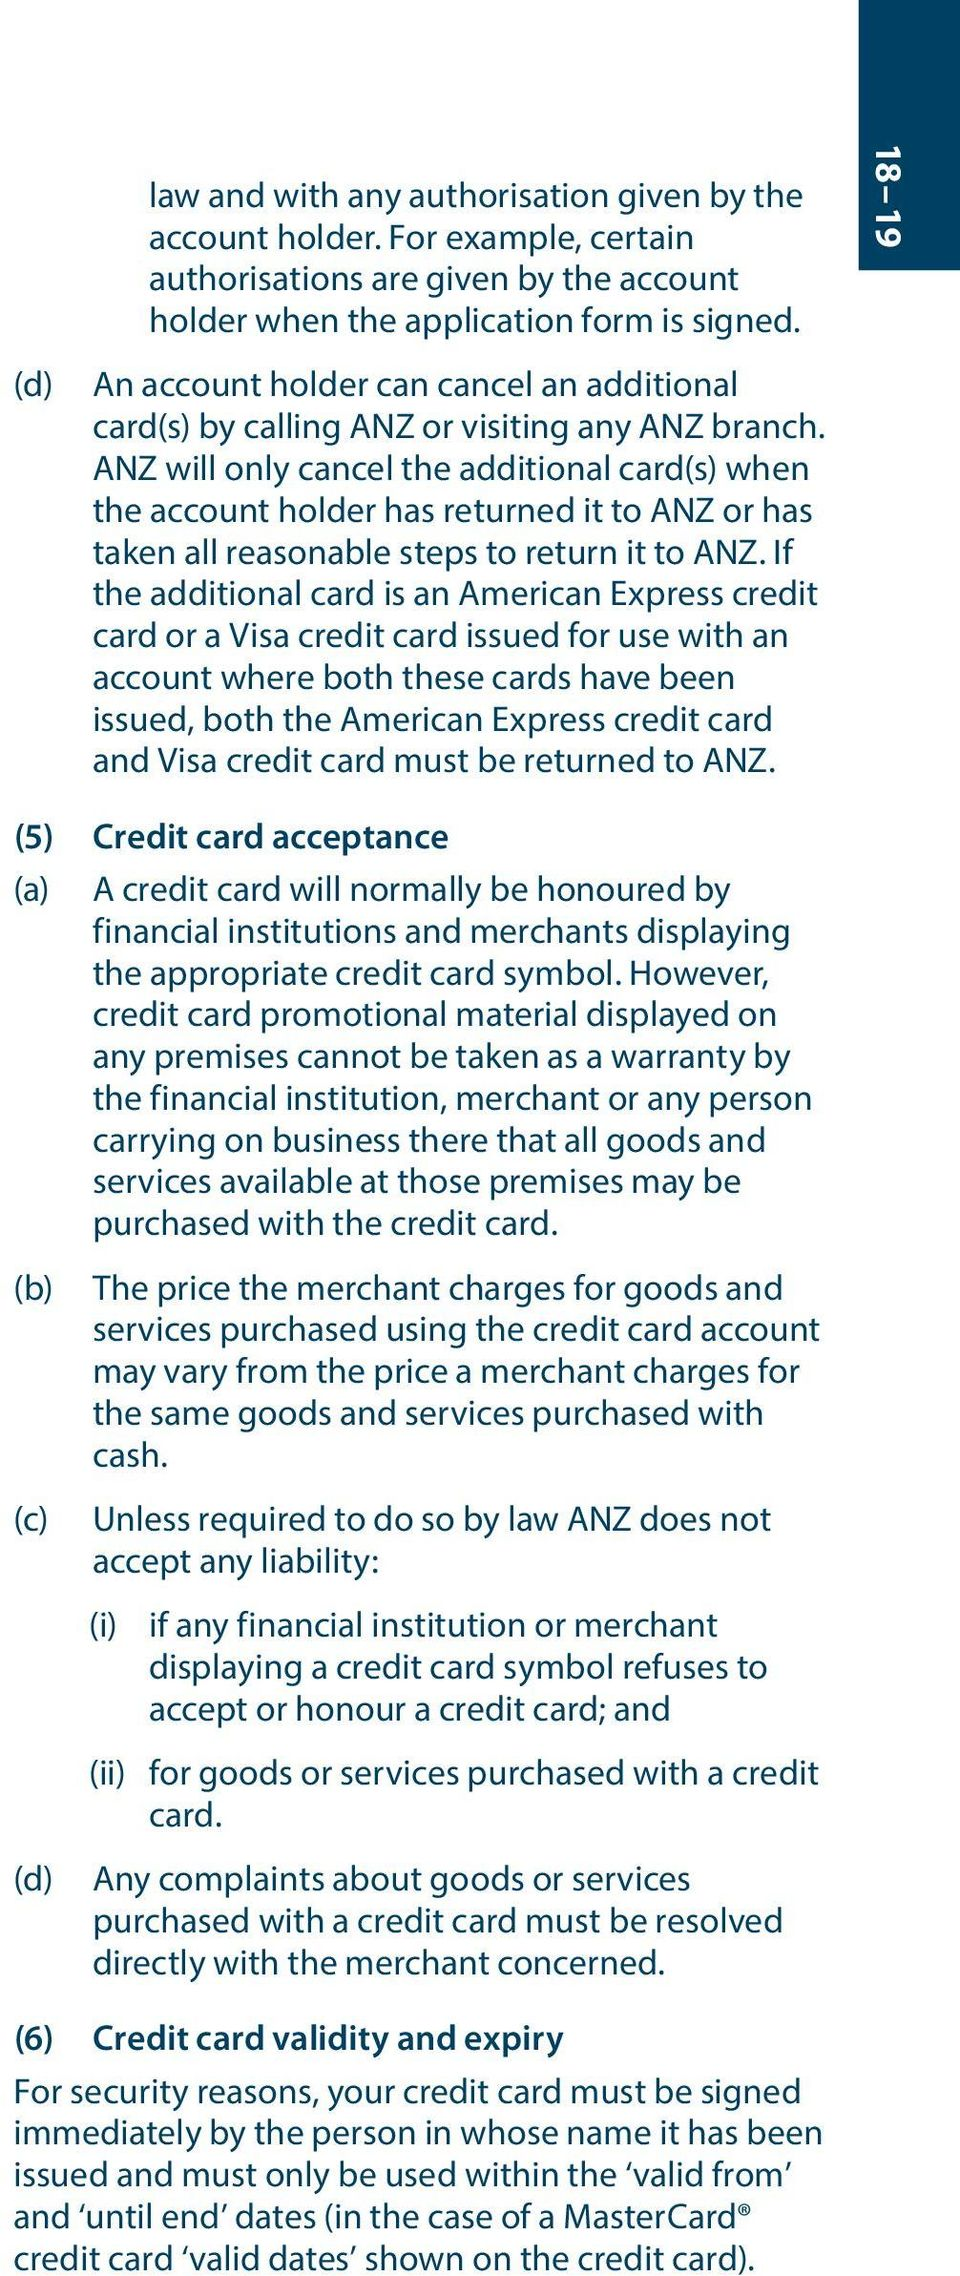 ANZ will only cancel the additional card(s) when the account holder has returned it to ANZ or has taken all reasonable steps to return it to ANZ.